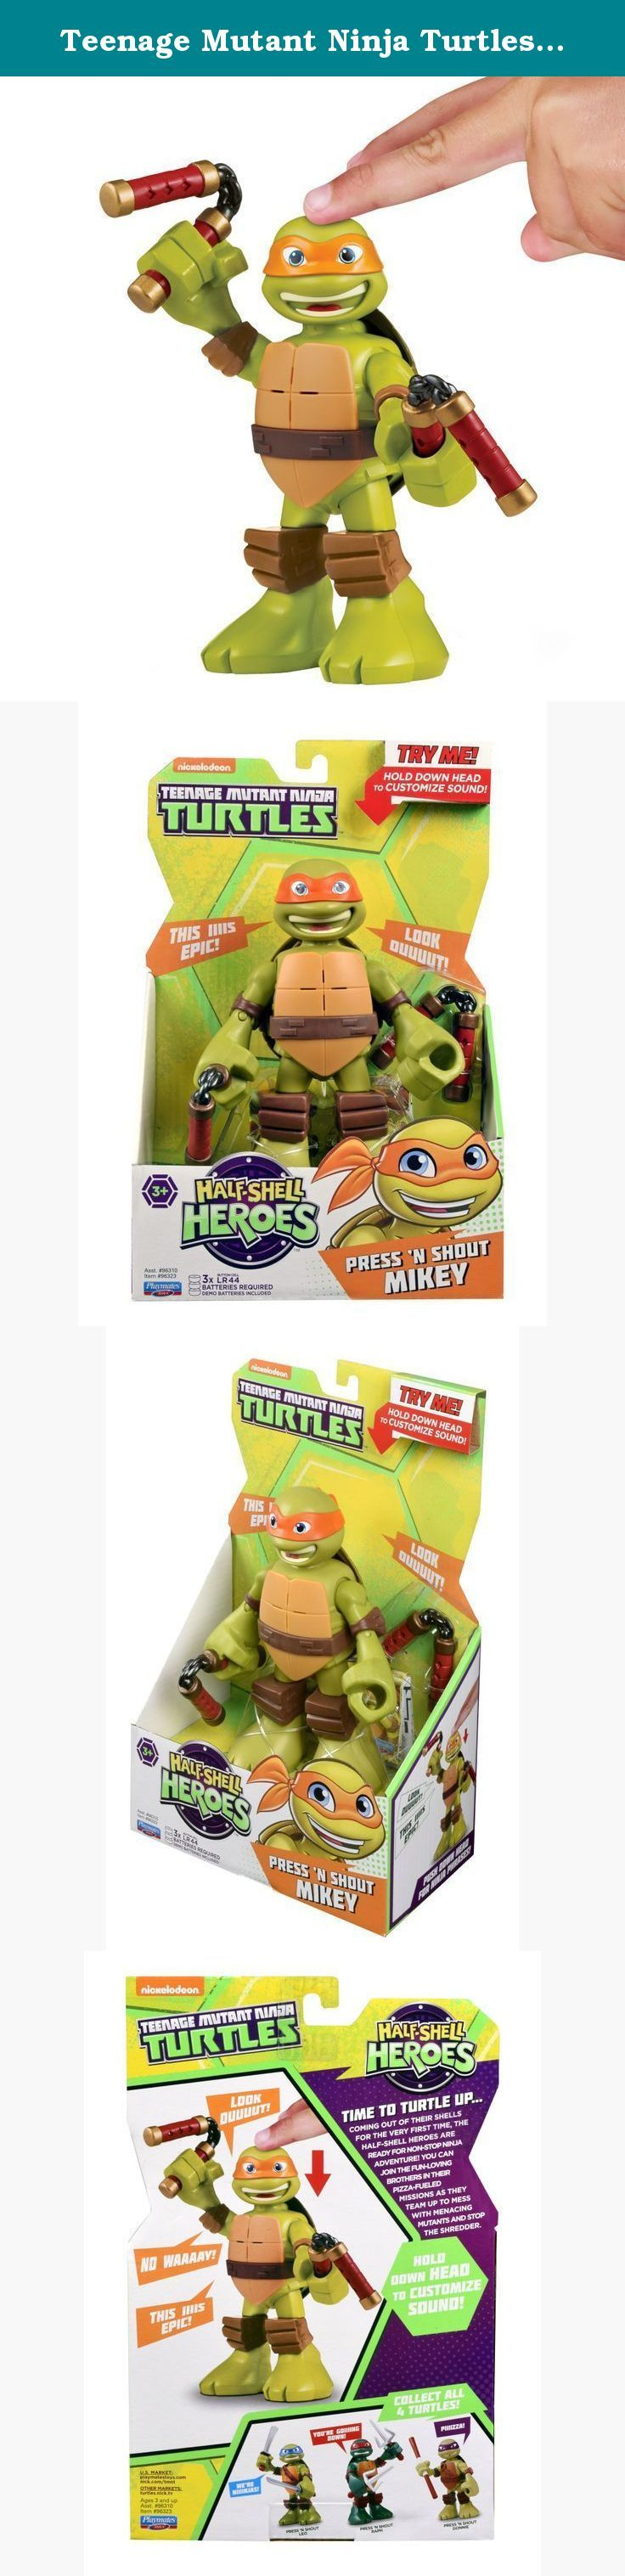 """Teenage Mutant Ninja Turtles Pre-cool Half Shell Heroes 6"""" Michelangelo Powersound Talking Turtles Figure. Coming out of their shells for the very first time, the Half-Shell Heroes are ready for non-stop ninja adventure! You can join the fun-loving brothers in their pizza-fueled missions as they team up to mess with menacing mutants and stop the Shredder."""